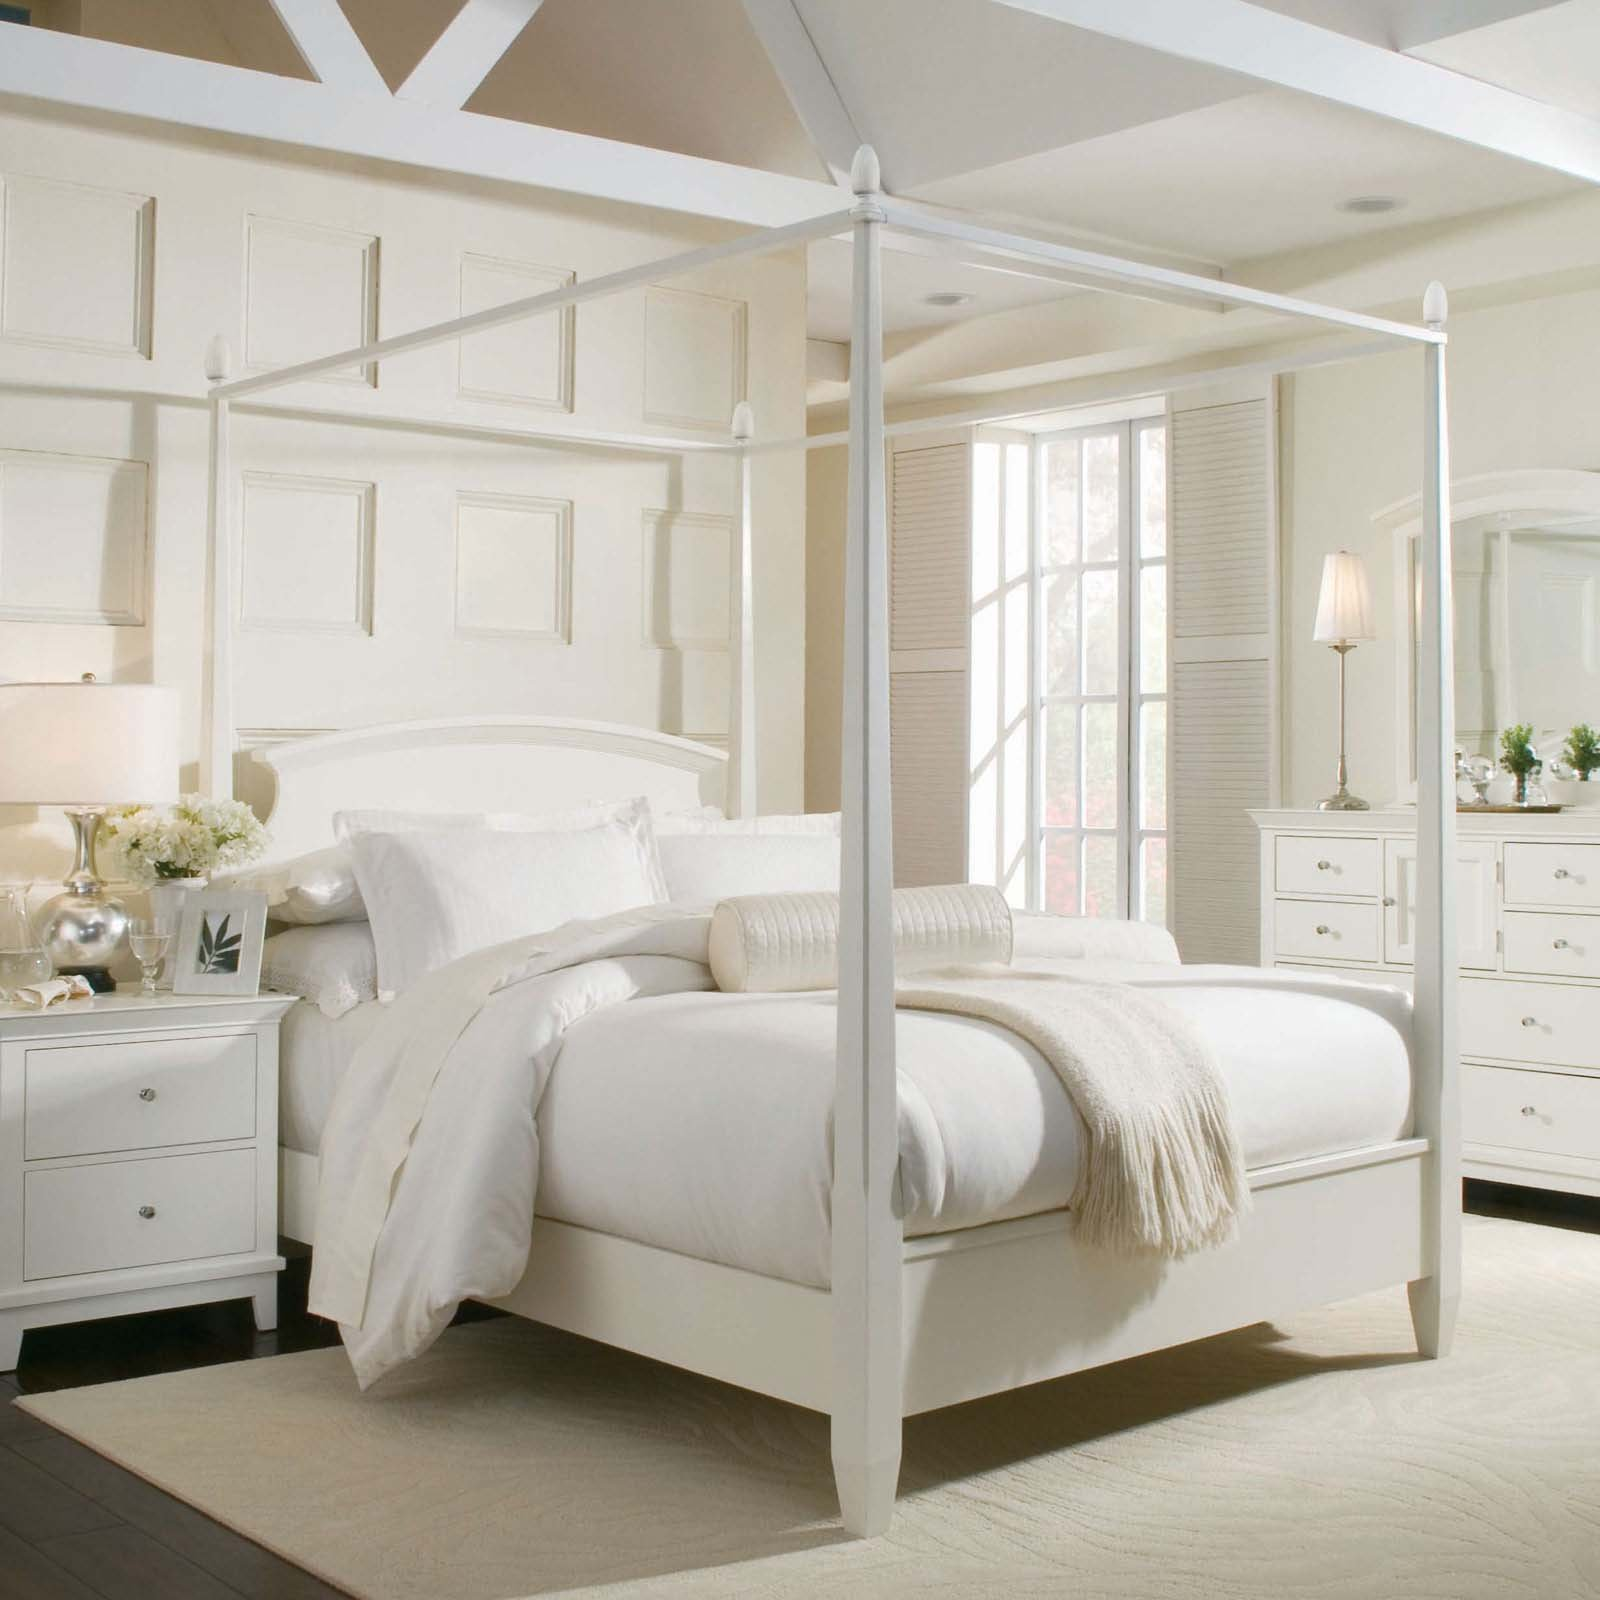 Interior Design Home Decor Furniture Amp Furnishings The Look Beautiful Canopy Beds